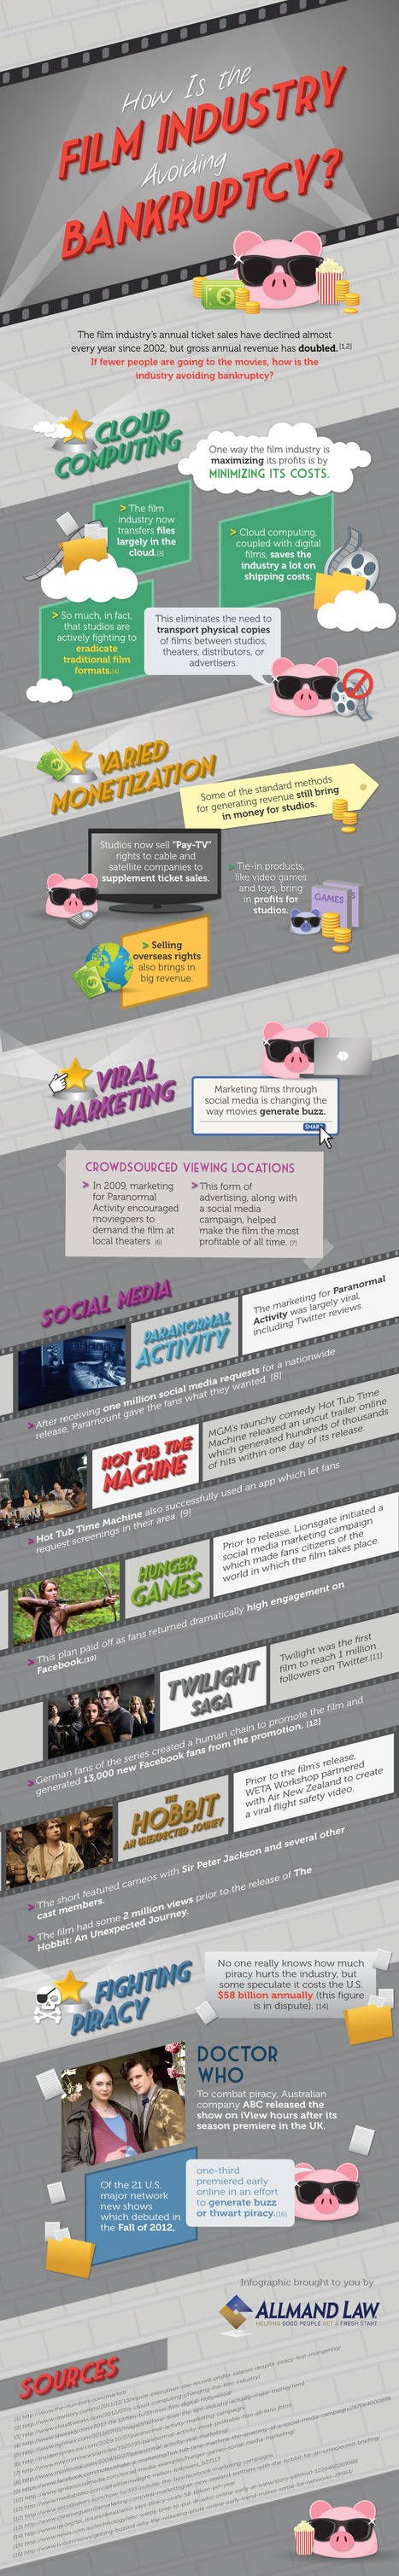 How Social Media and Viral Marketing are Saving the Film Industry [INFOGRAPHIC] | Transmedia: Storytelling for the Digital Age | Scoop.it